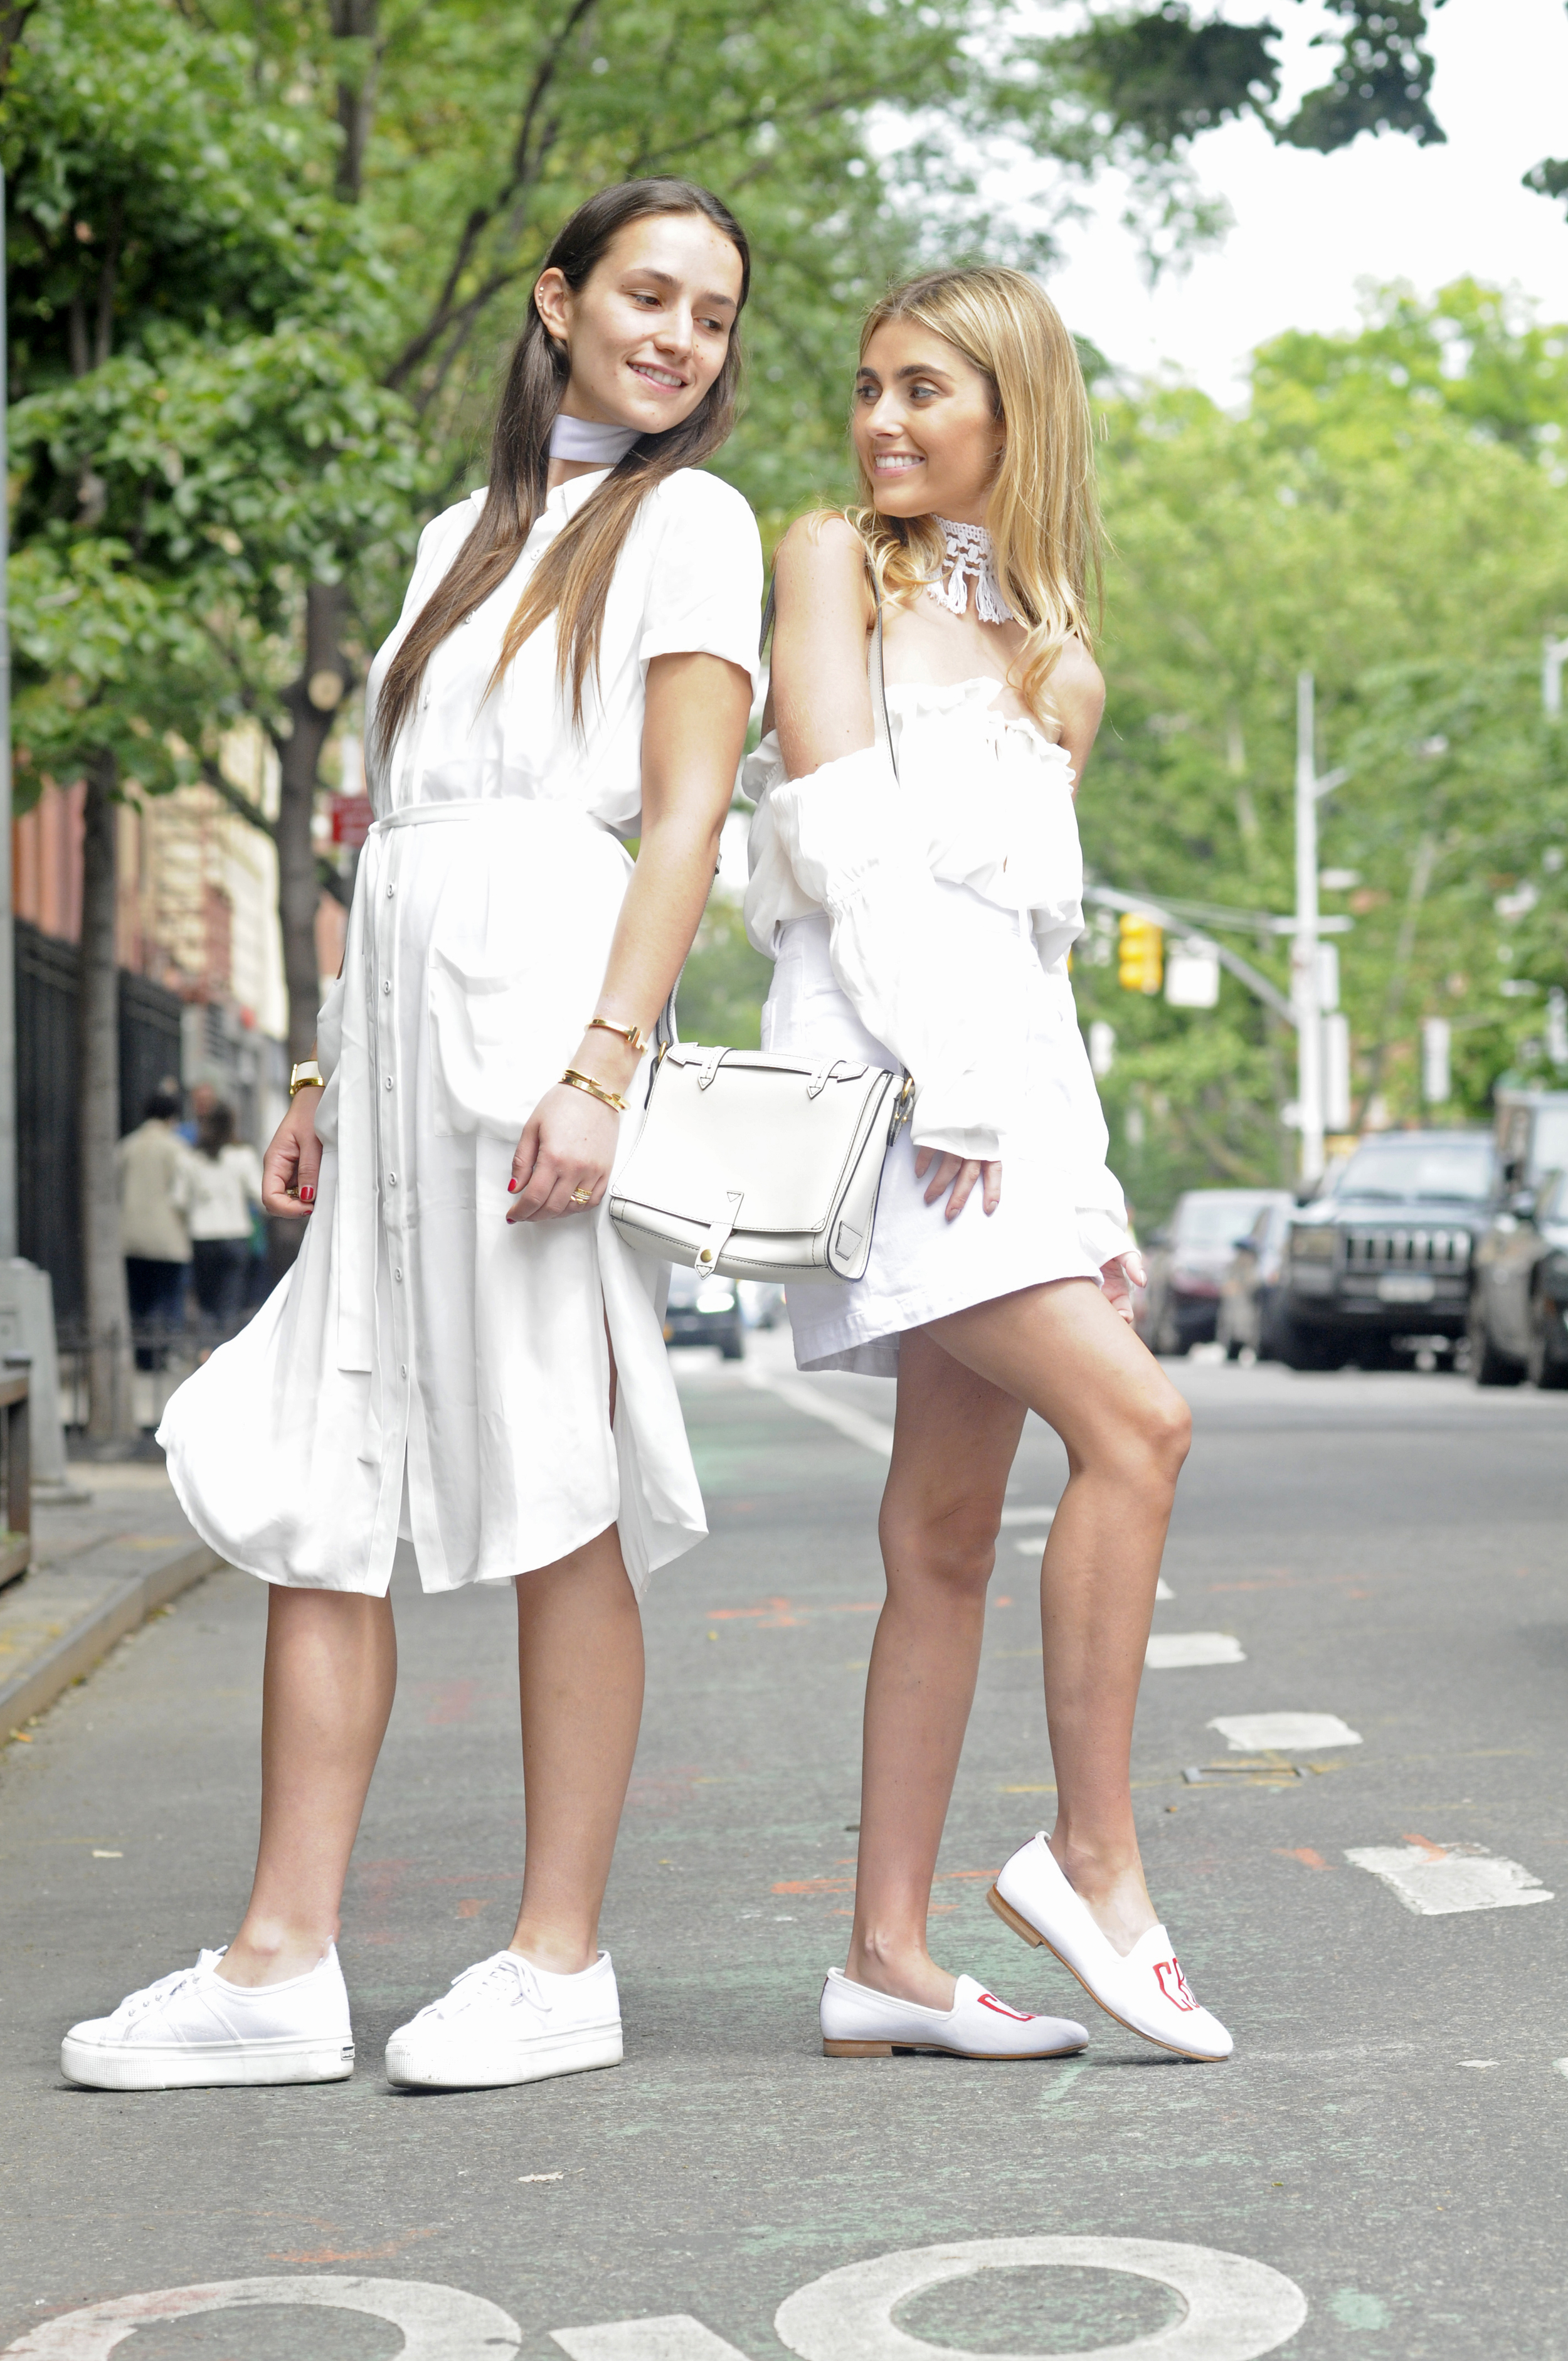 NYC STREET STYLE SISTER FASHION BLOGGERS BICKLEYS